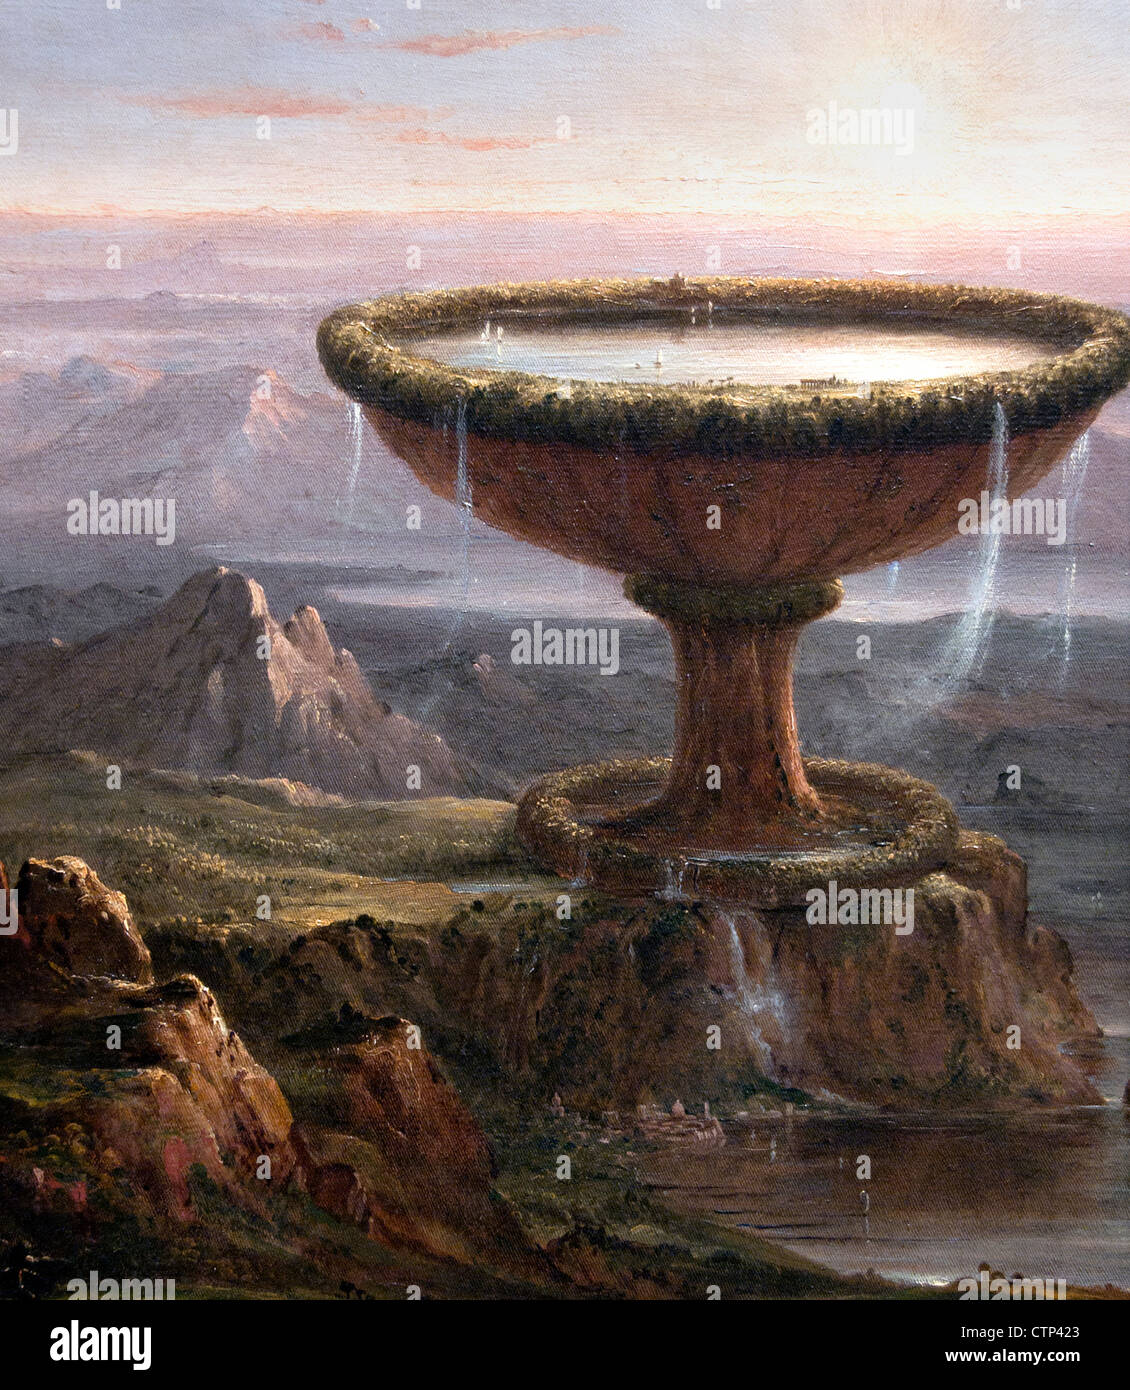 The Titan's Goblet 1836 Thomas Cole American United States of America - Stock Image